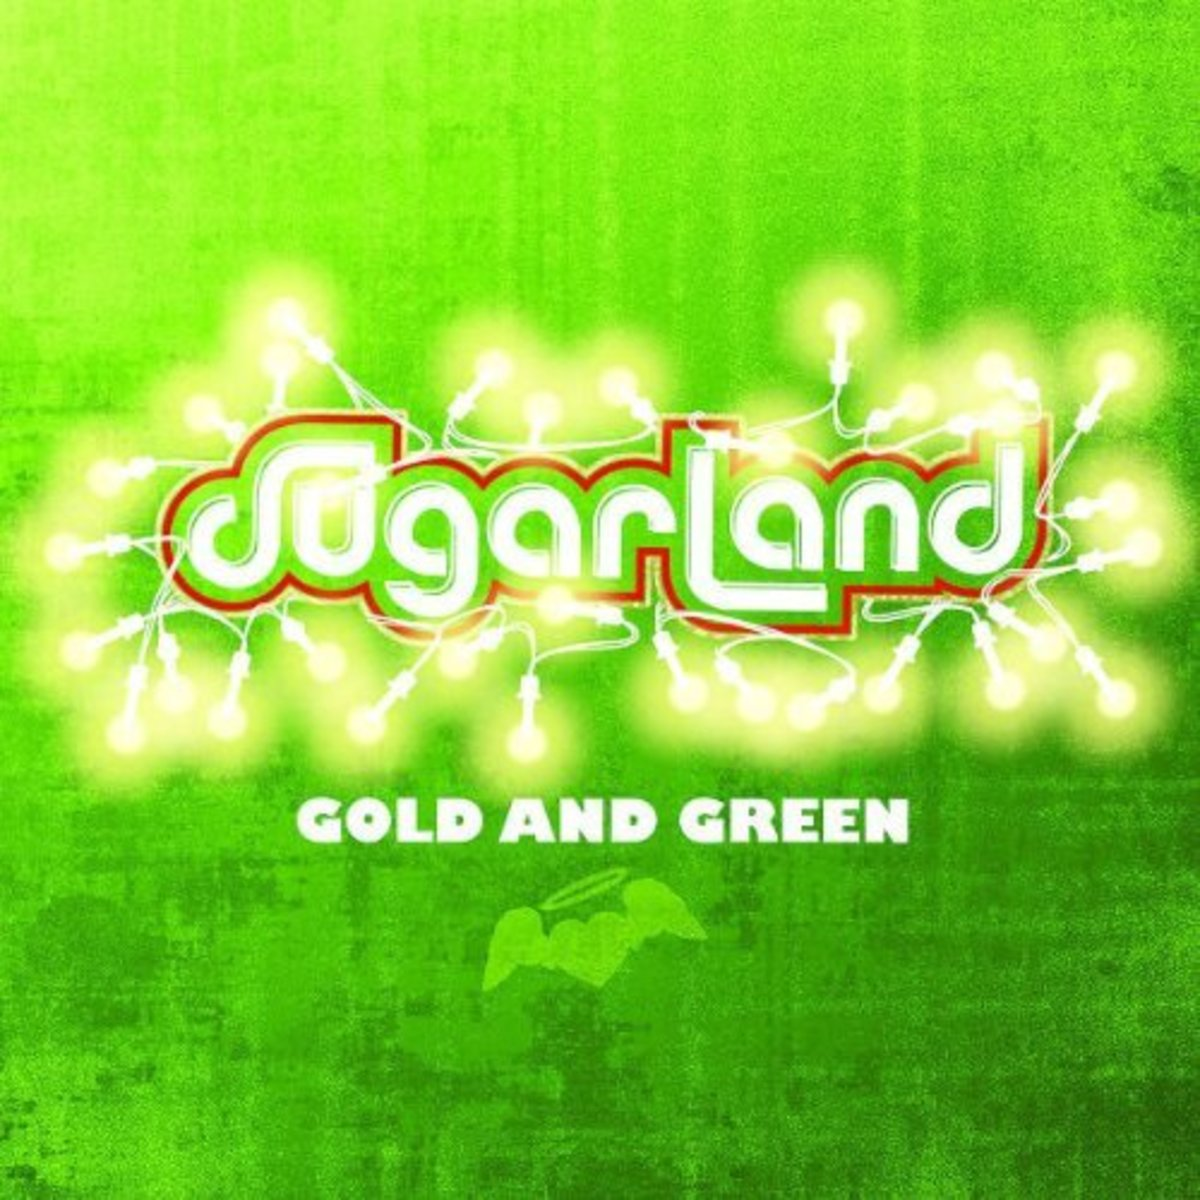 """Sugarland ~ """"Gold And Green"""" featuring the funniest Christmas song ever """"Nuttin' For Christmas"""""""